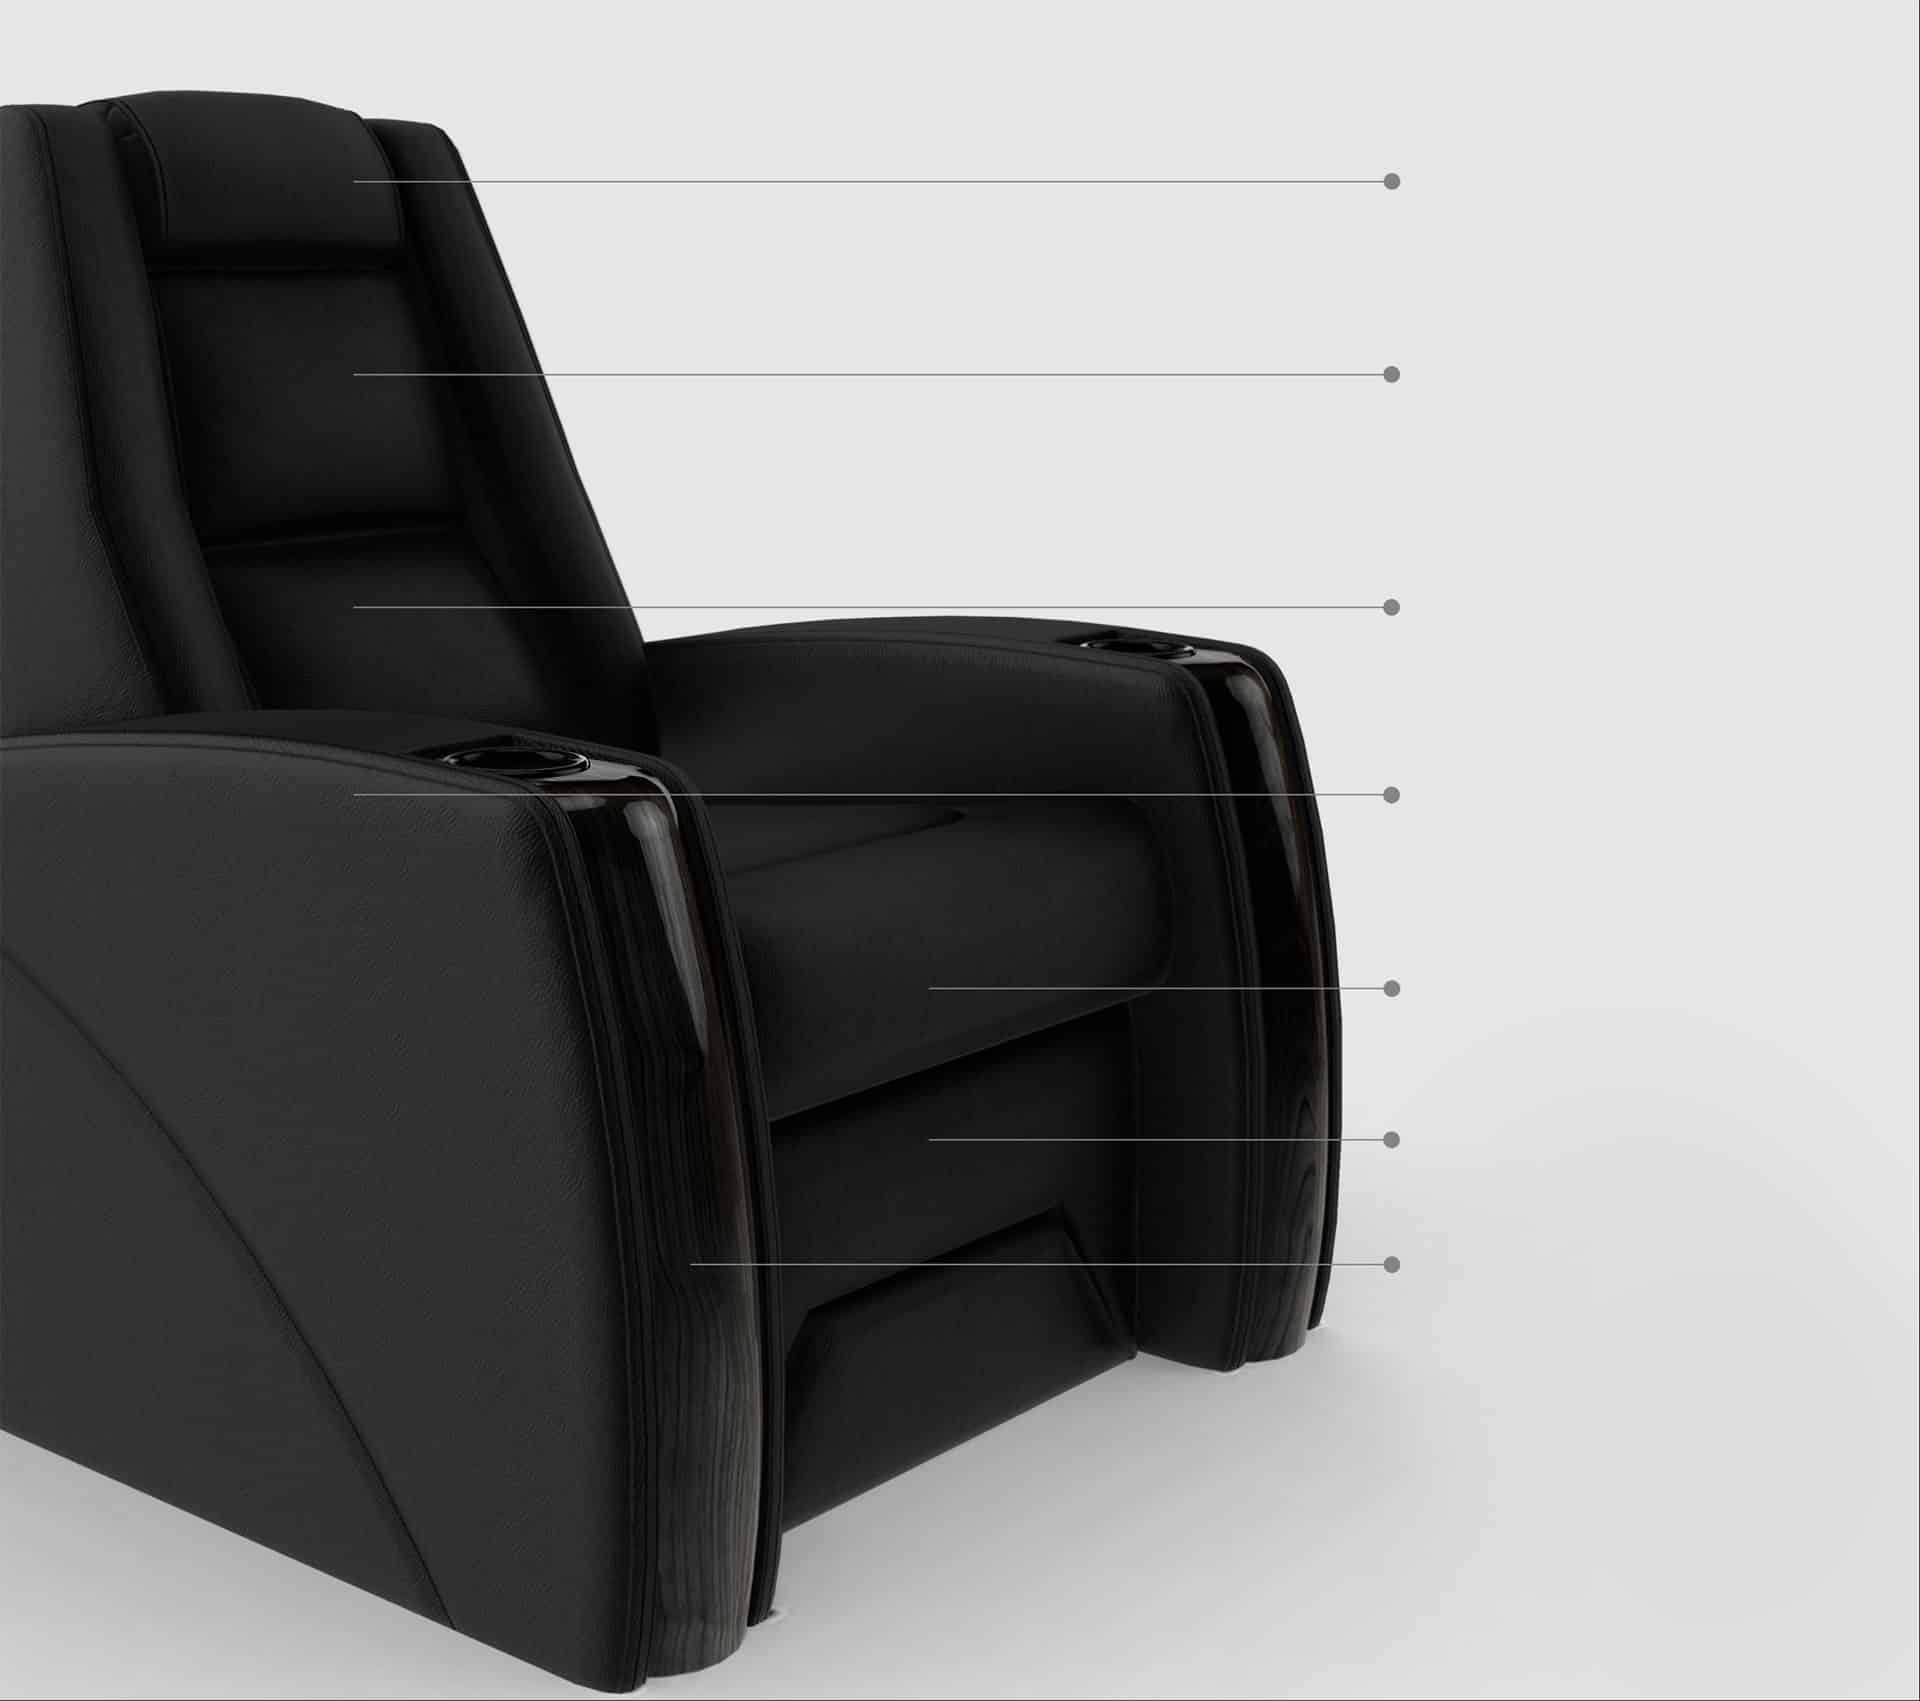 Home theatre chair point image